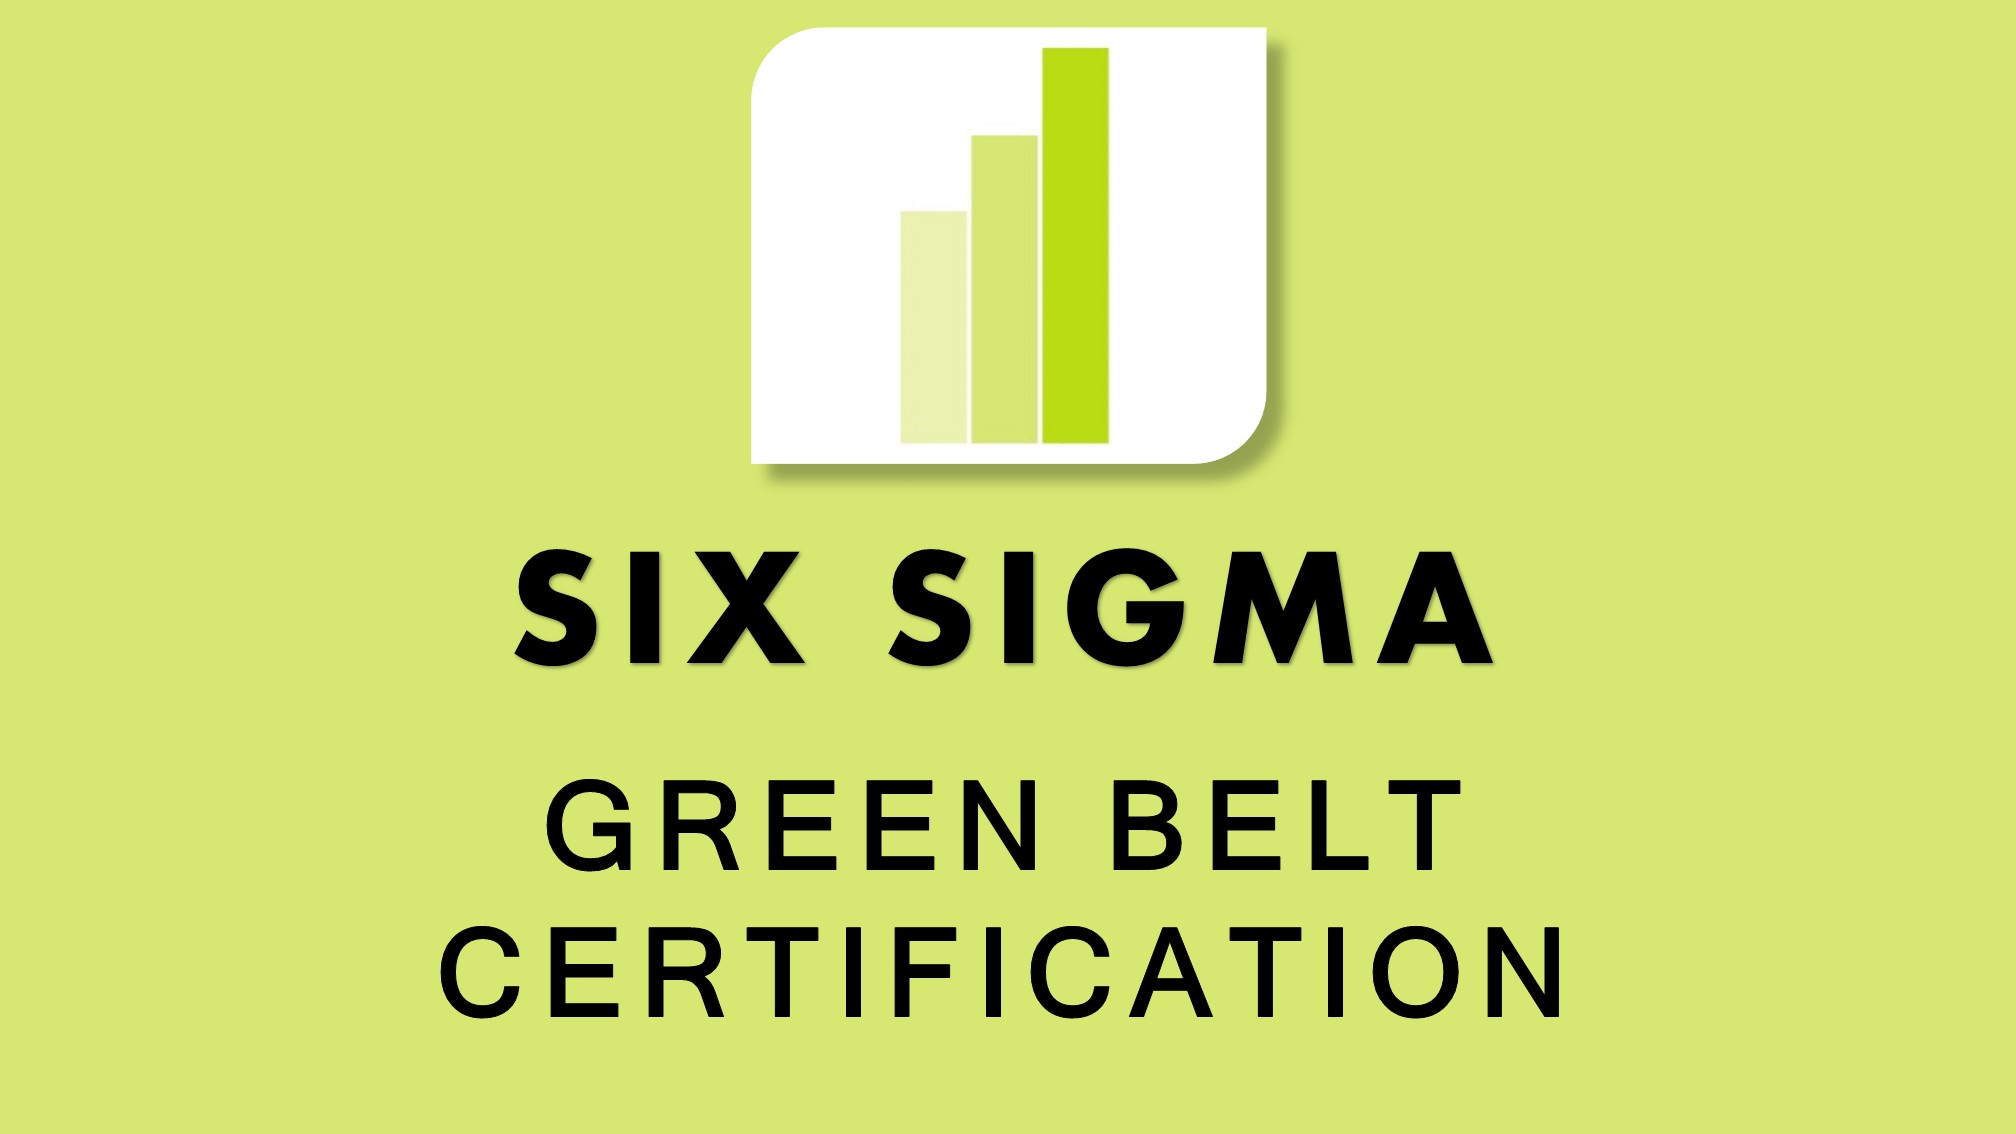 Six Sigma Green Belt Training Course And Certification Australia